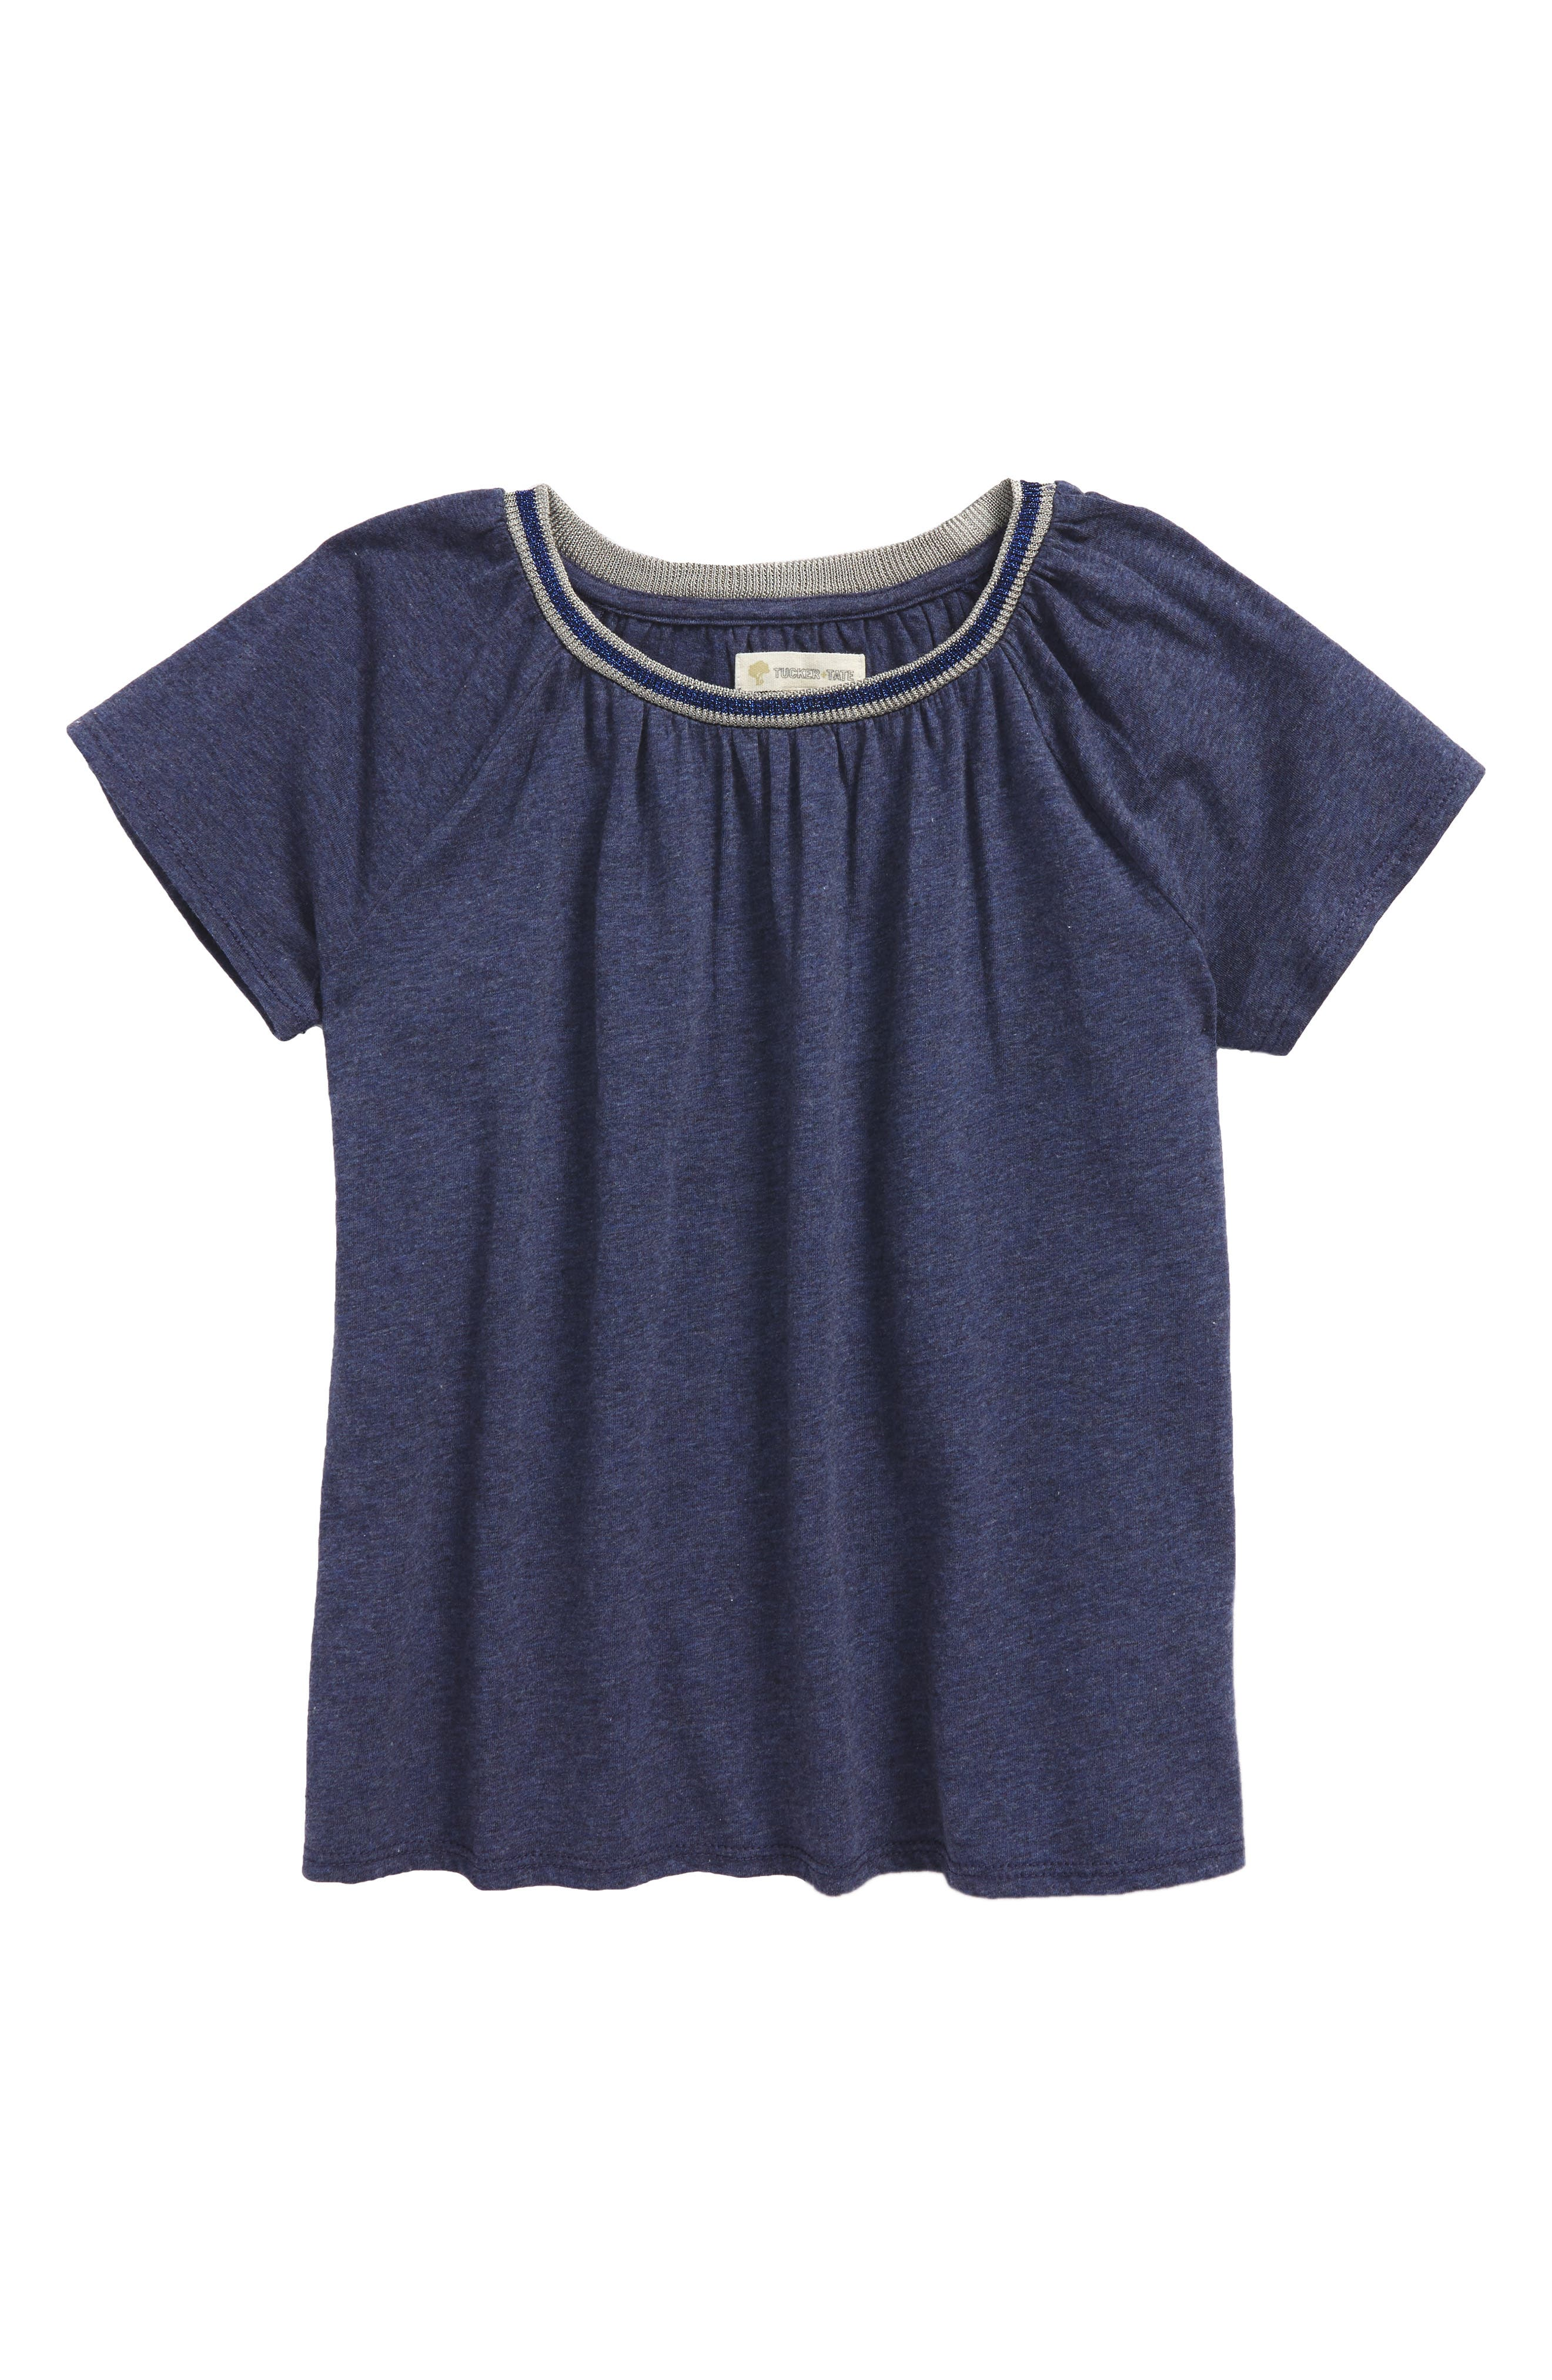 Tucker + Tate Essential Tee (Toddler Girls, Little Girls & Big Girls)